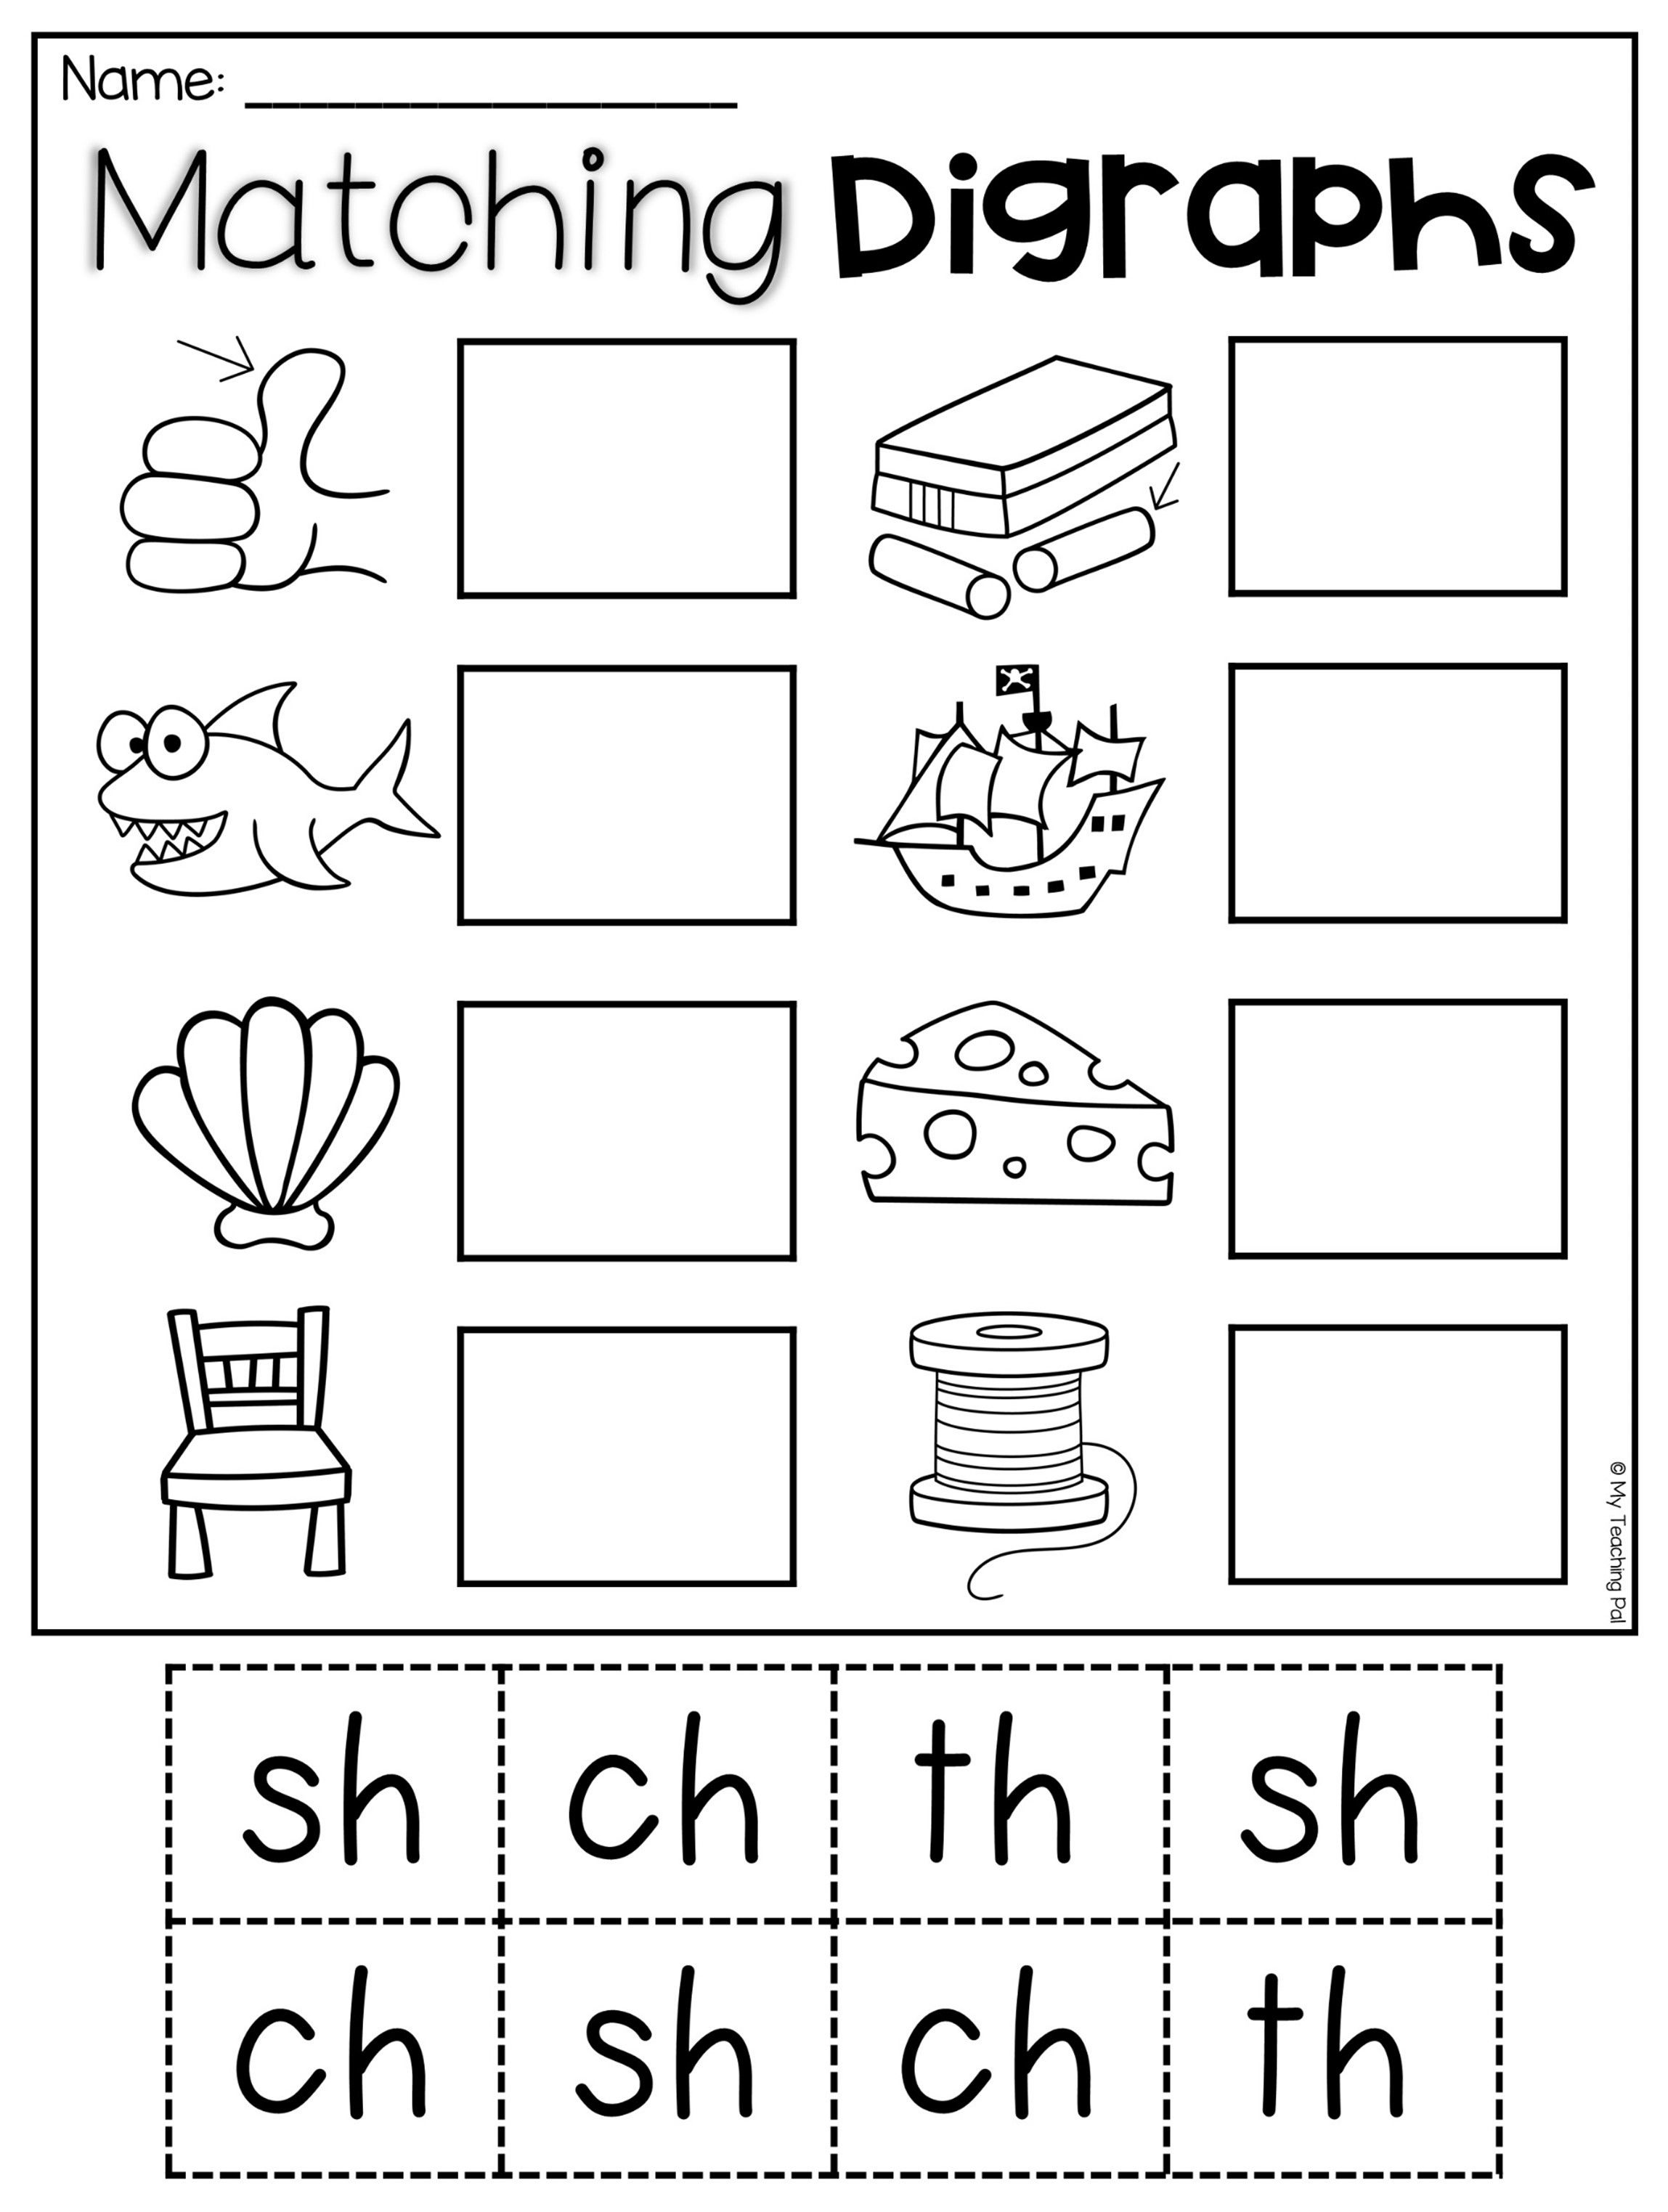 hight resolution of Matching digraphs worksheet for sh